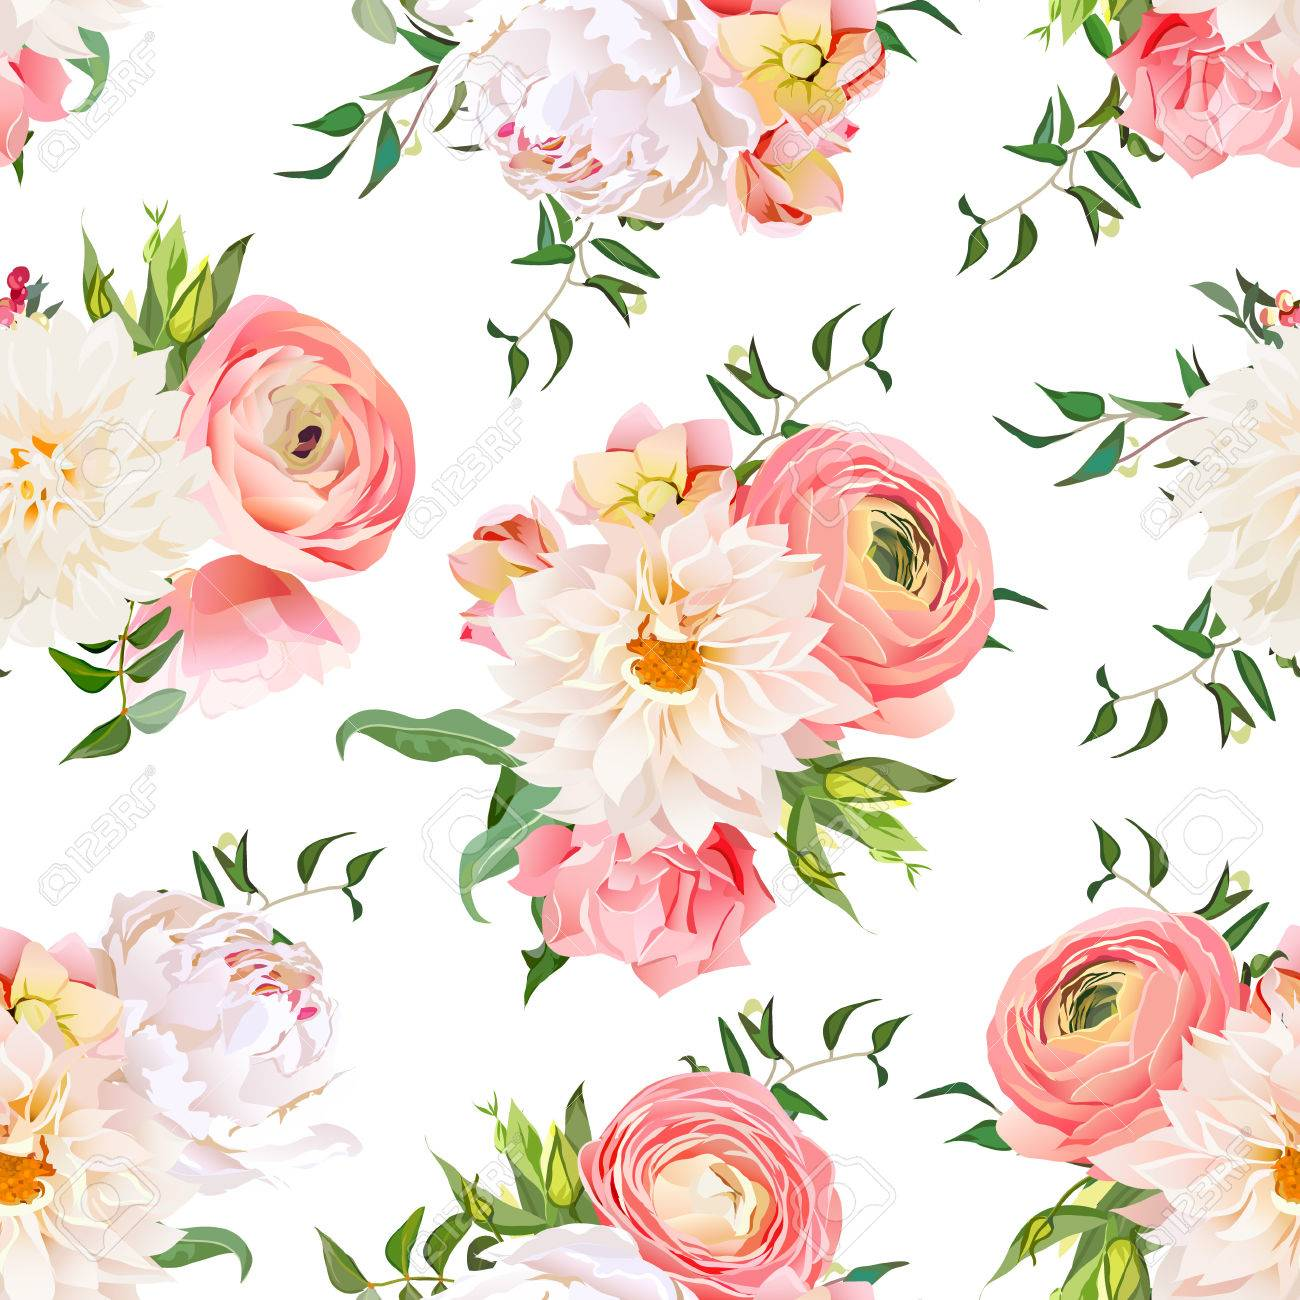 dahlia ranunculus rose and peony seamless pattern romantic garden print stock vector - Garden Rose And Peony